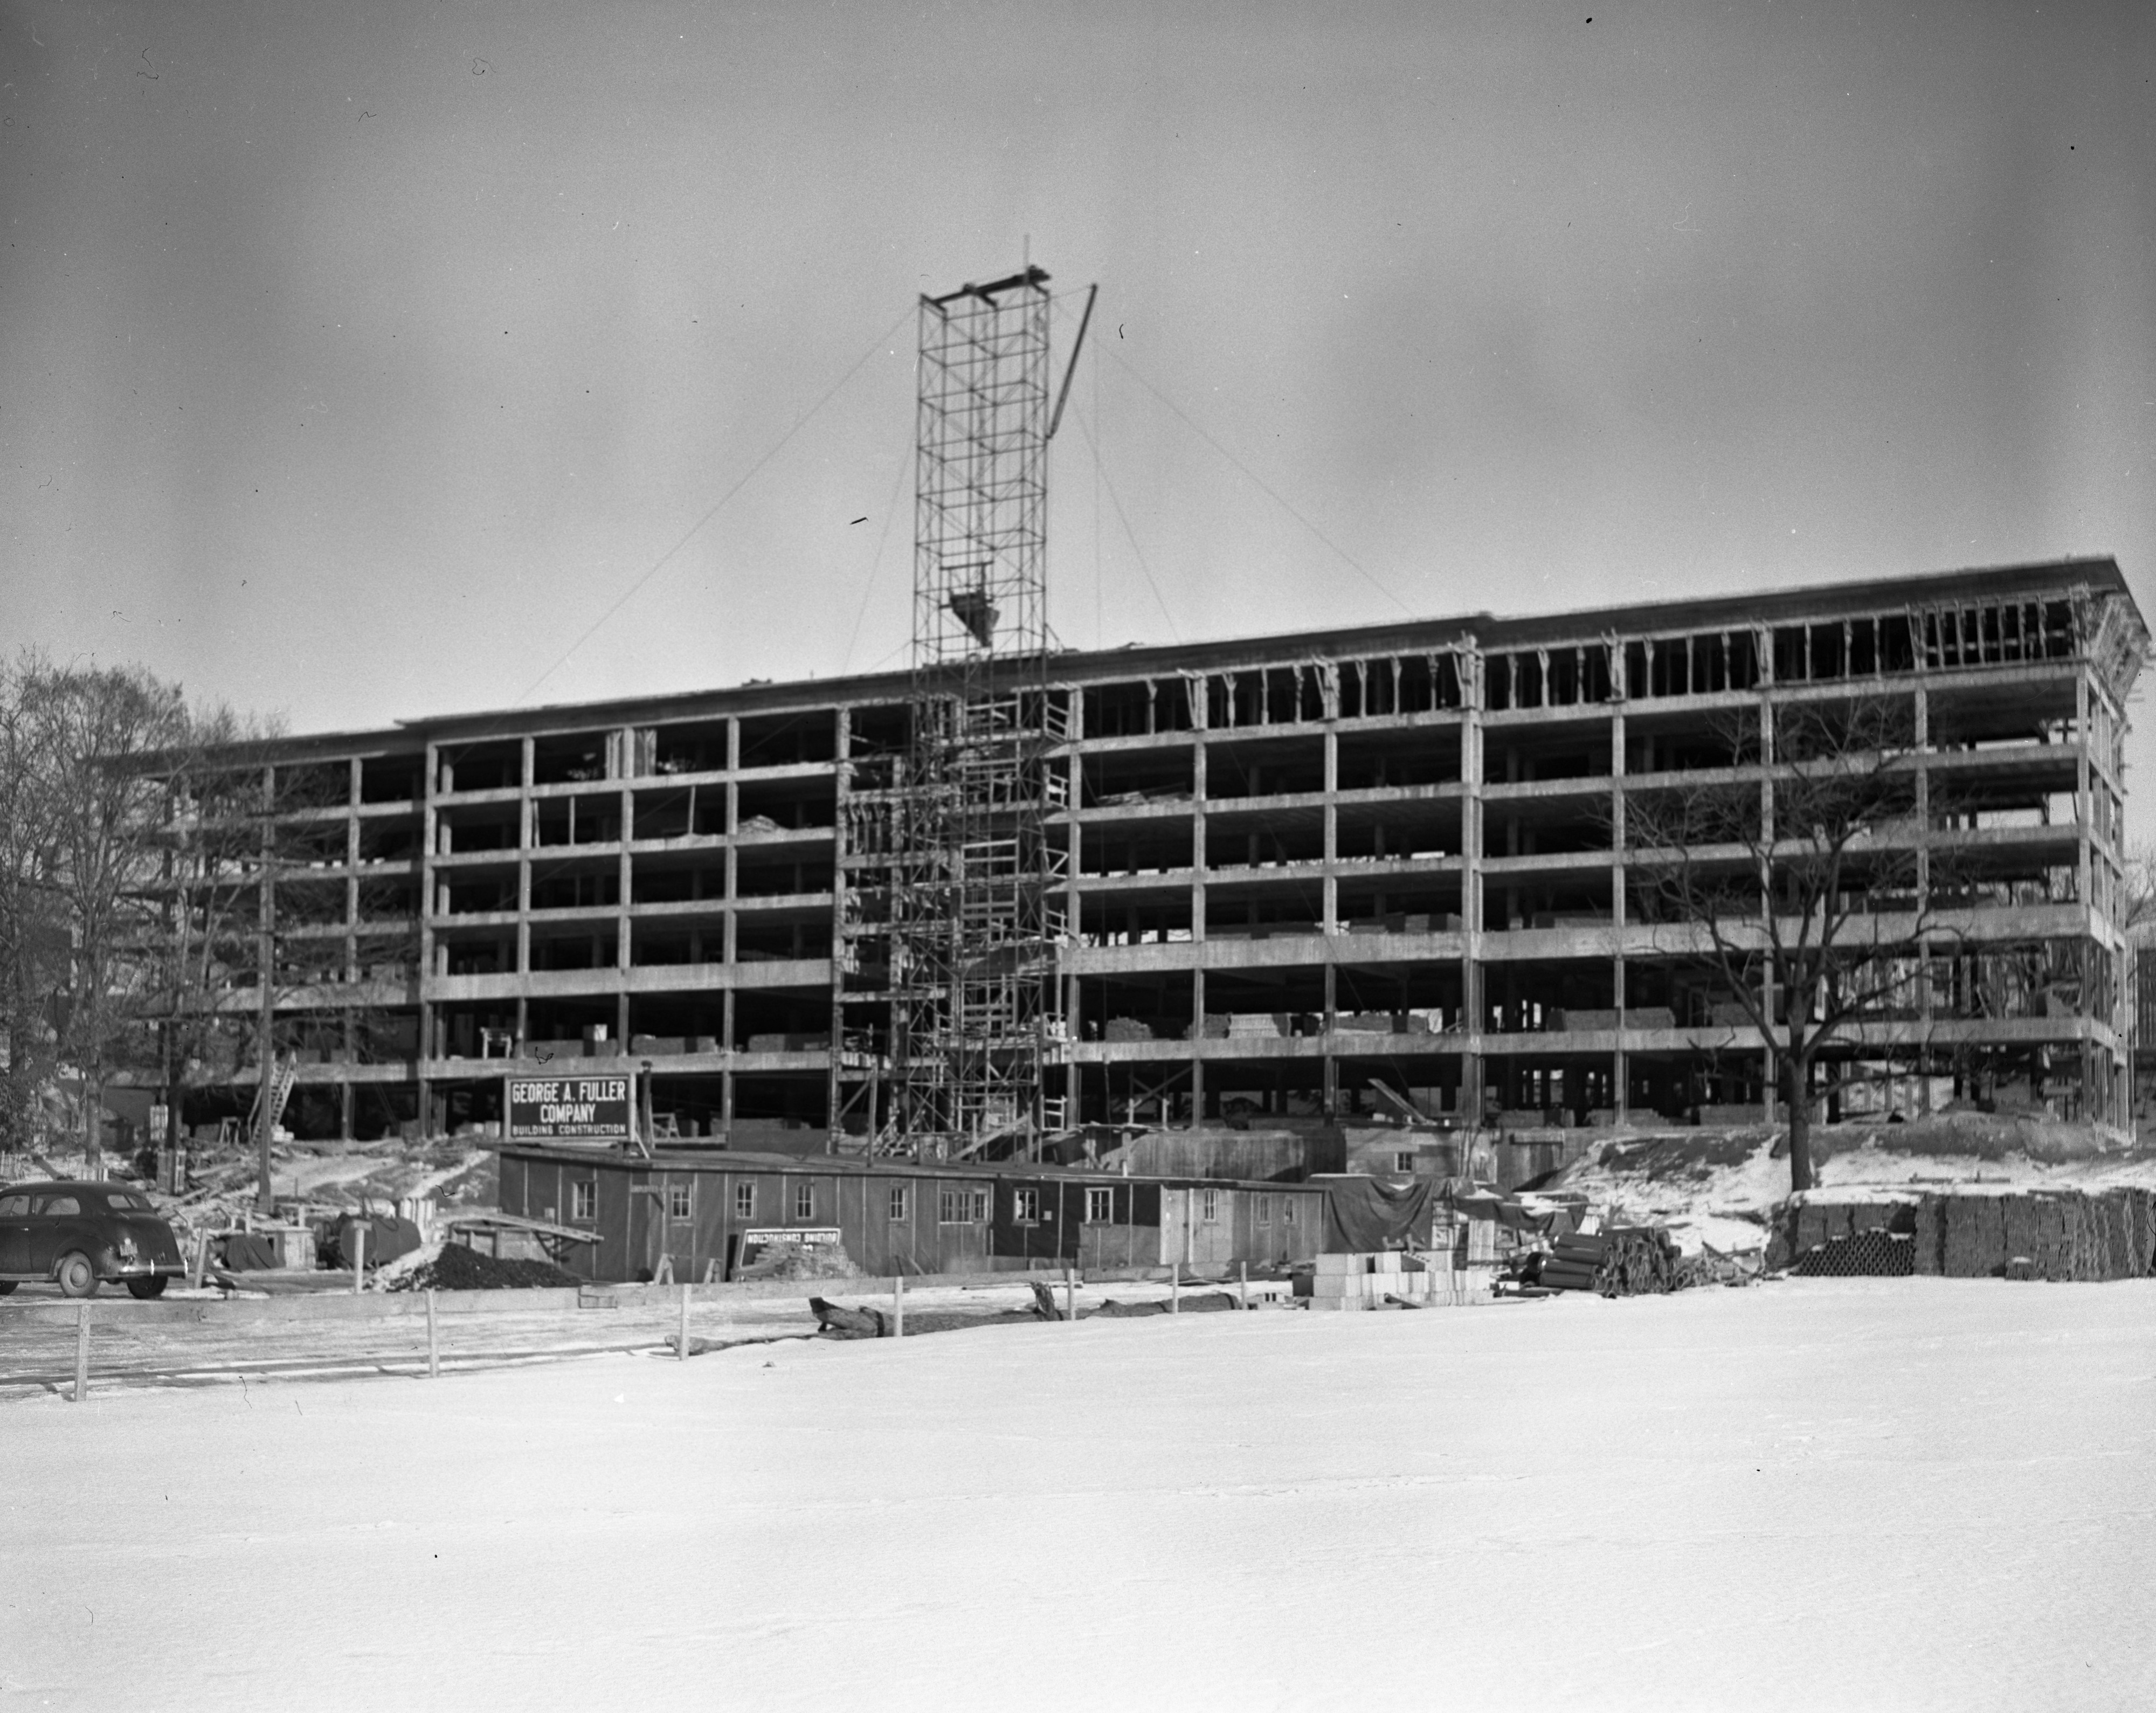 Construction progresses on Observatory Street dormitory for women, January 1948 image